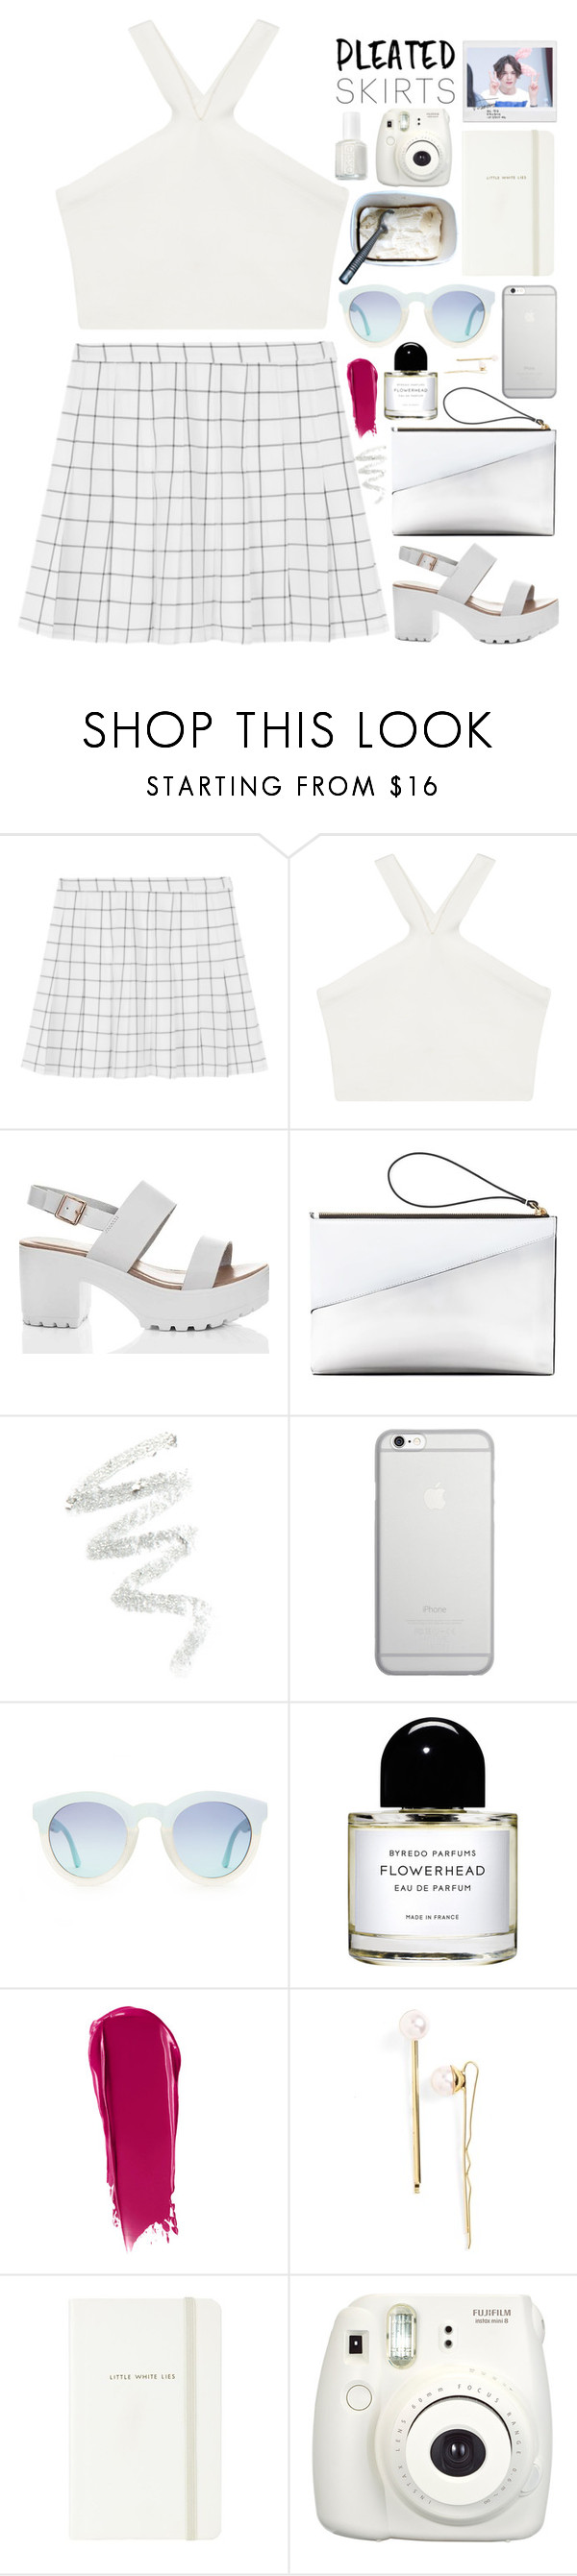 """pleated skirts"" by thelipglossgirl ❤ liked on Polyvore featuring BCBGMAXAZRIA, Marni, Cynthia Rowley, Native Union, Byredo, NARS Cosmetics, L. Erickson, Kate Spade, Polaroid and Essie"